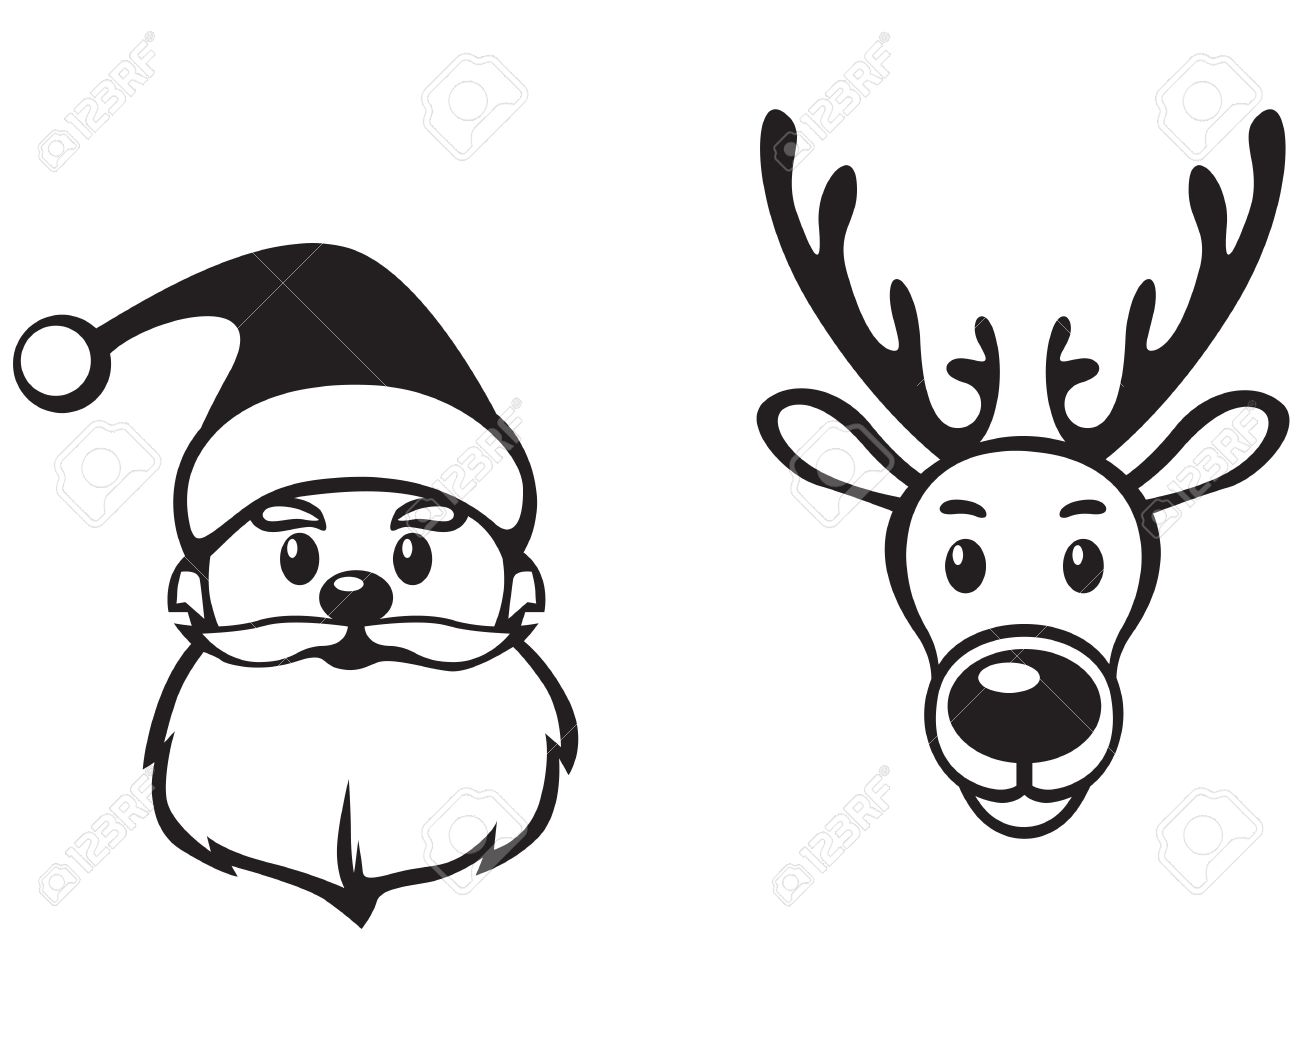 Reindeer Clipart Black And White